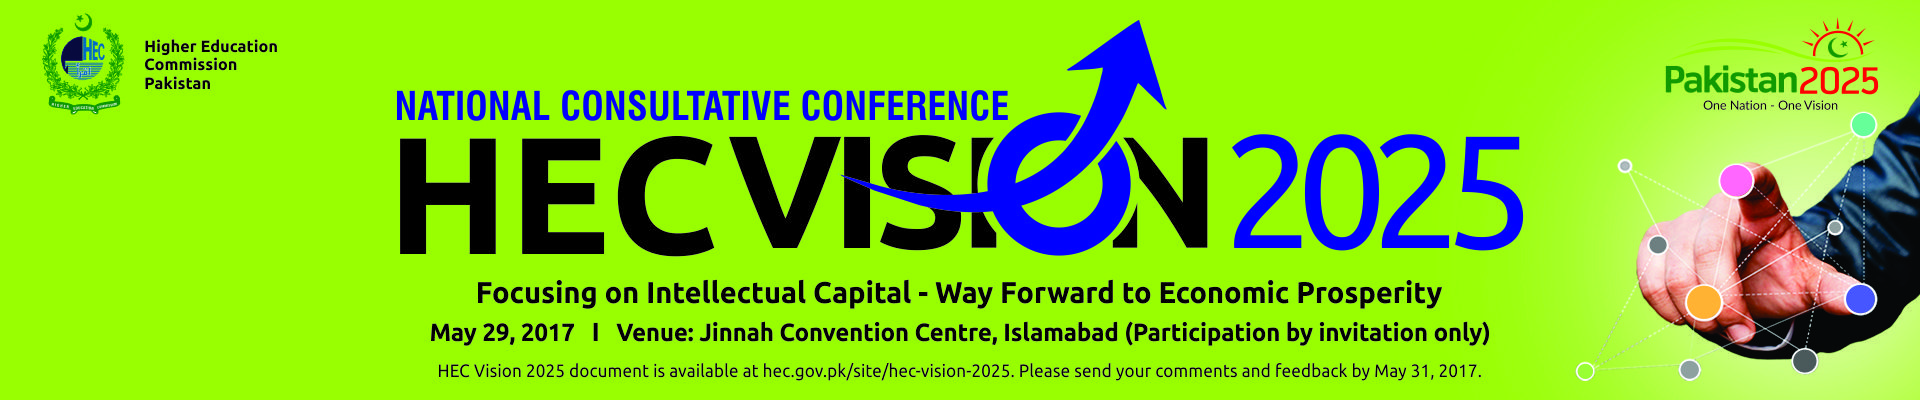 VC UoT to attend HEC Vision 2025 Conference